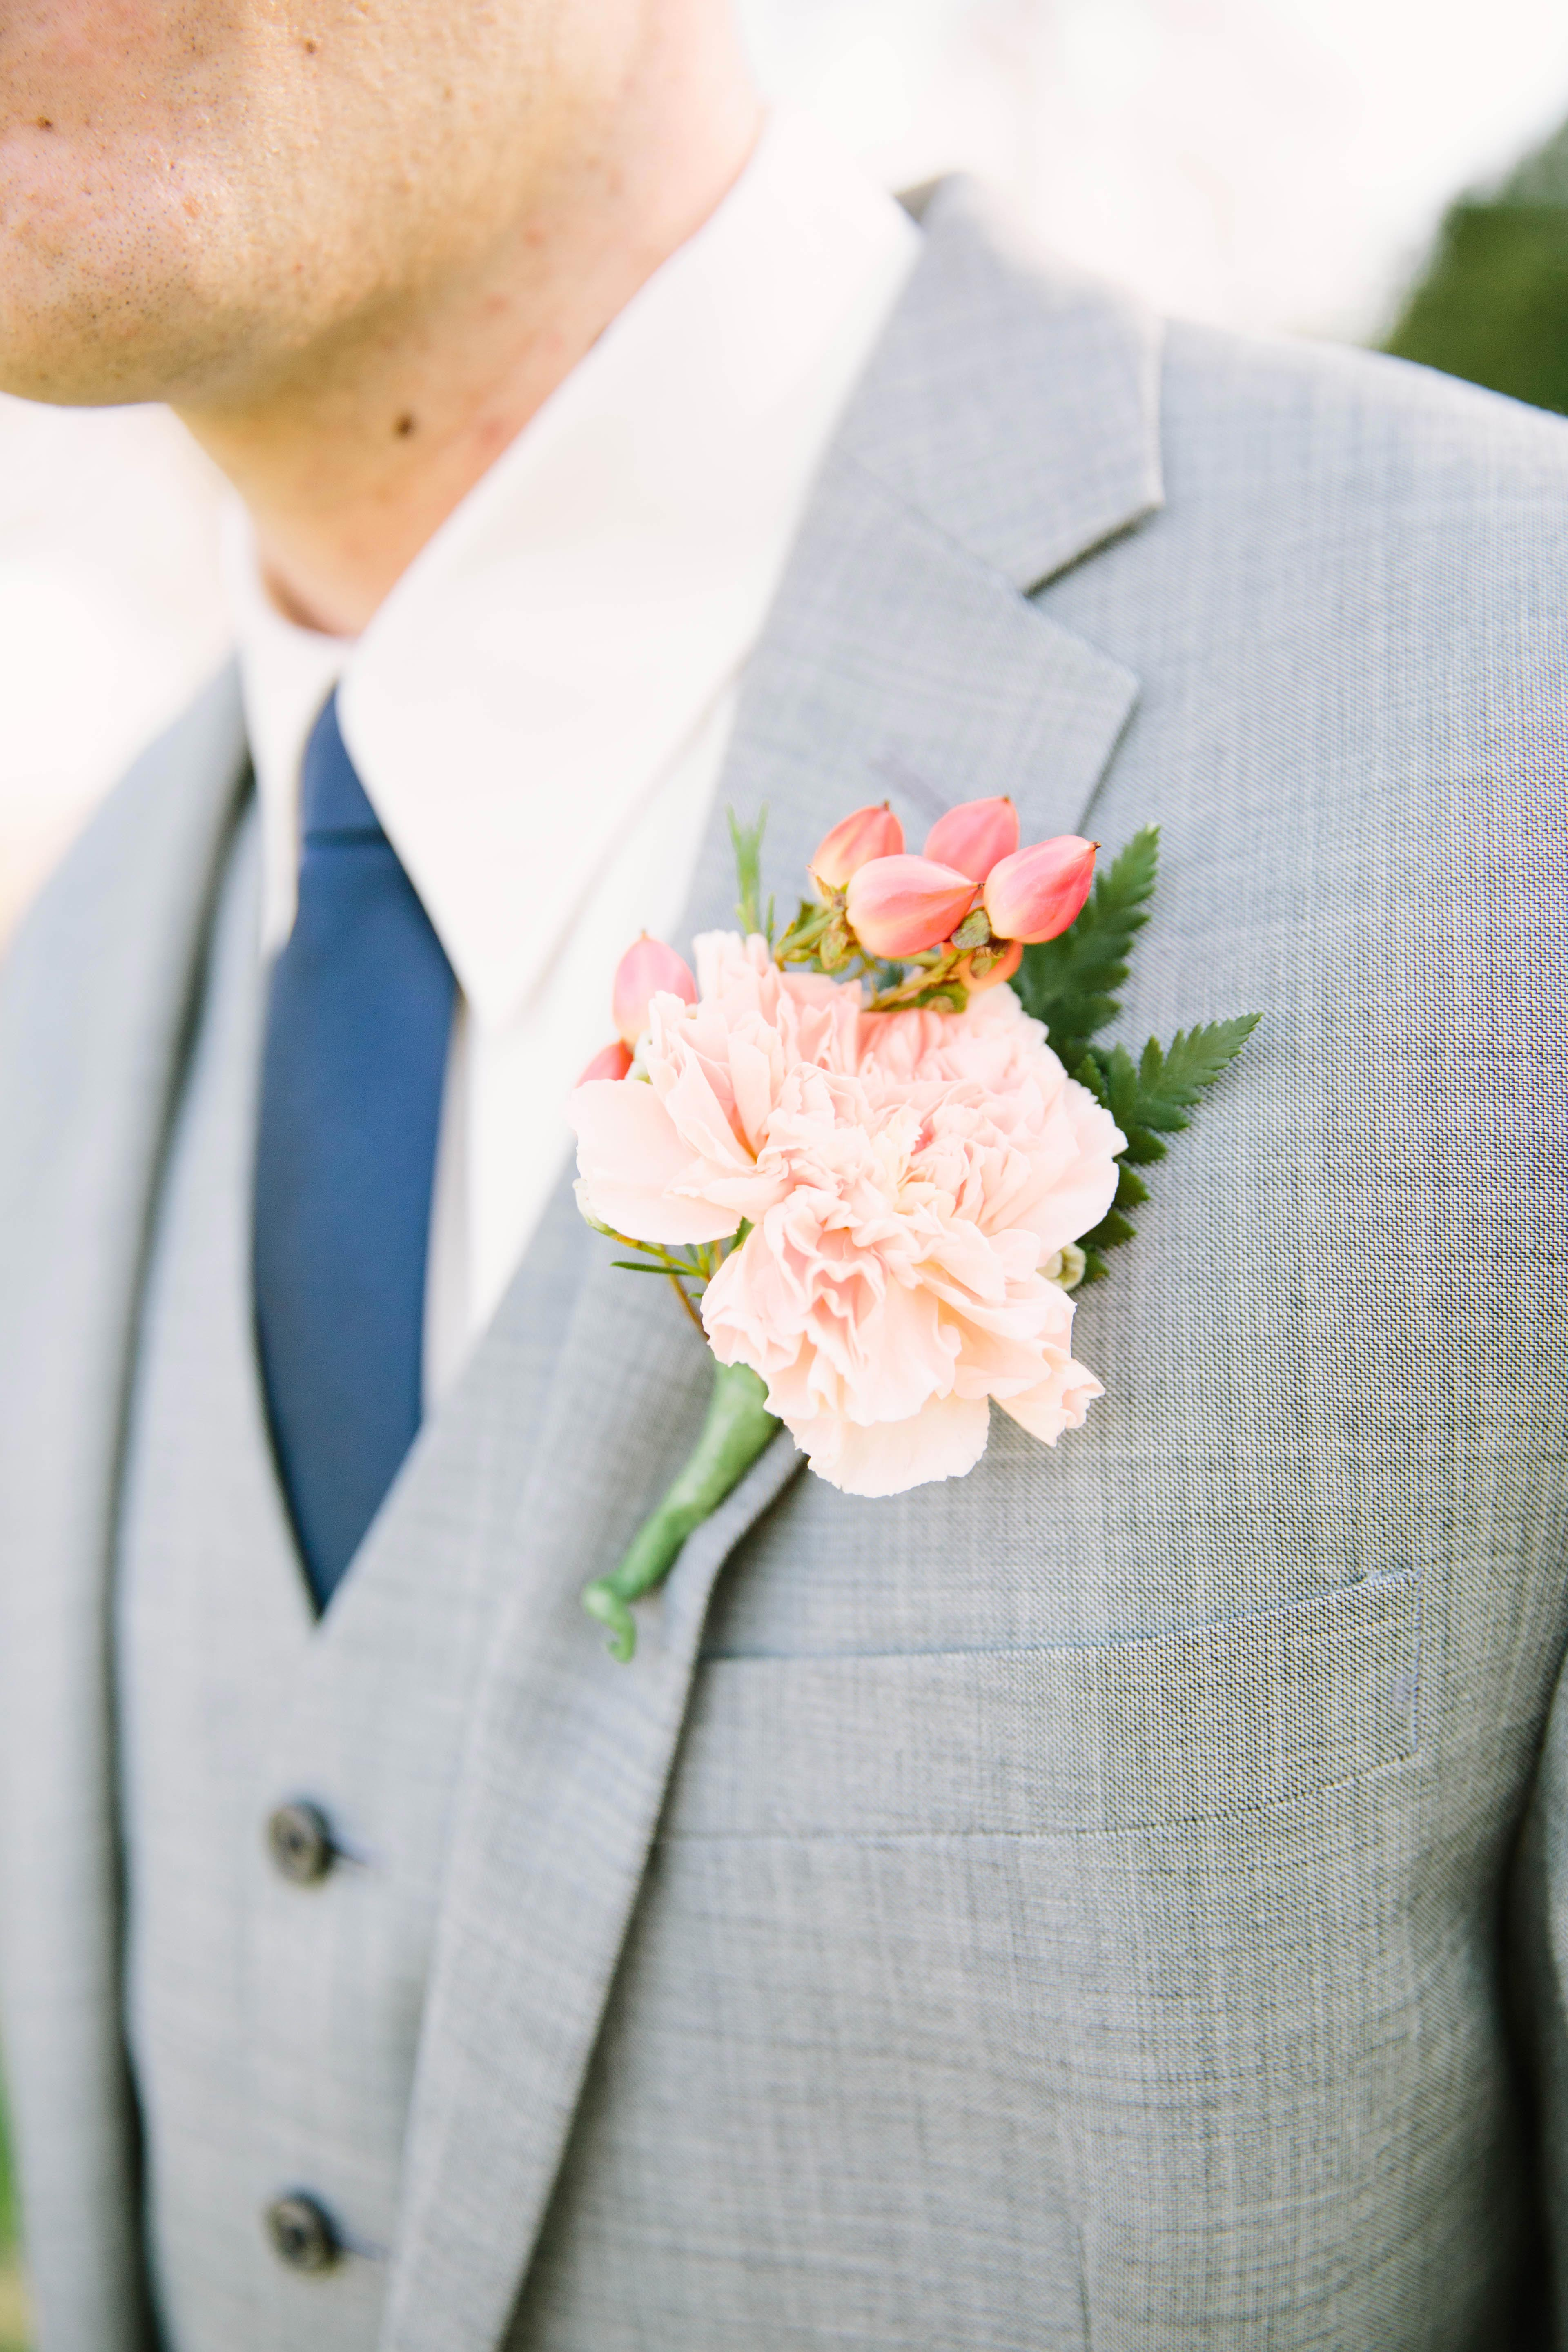 Carnation Boutonnière for the Groom